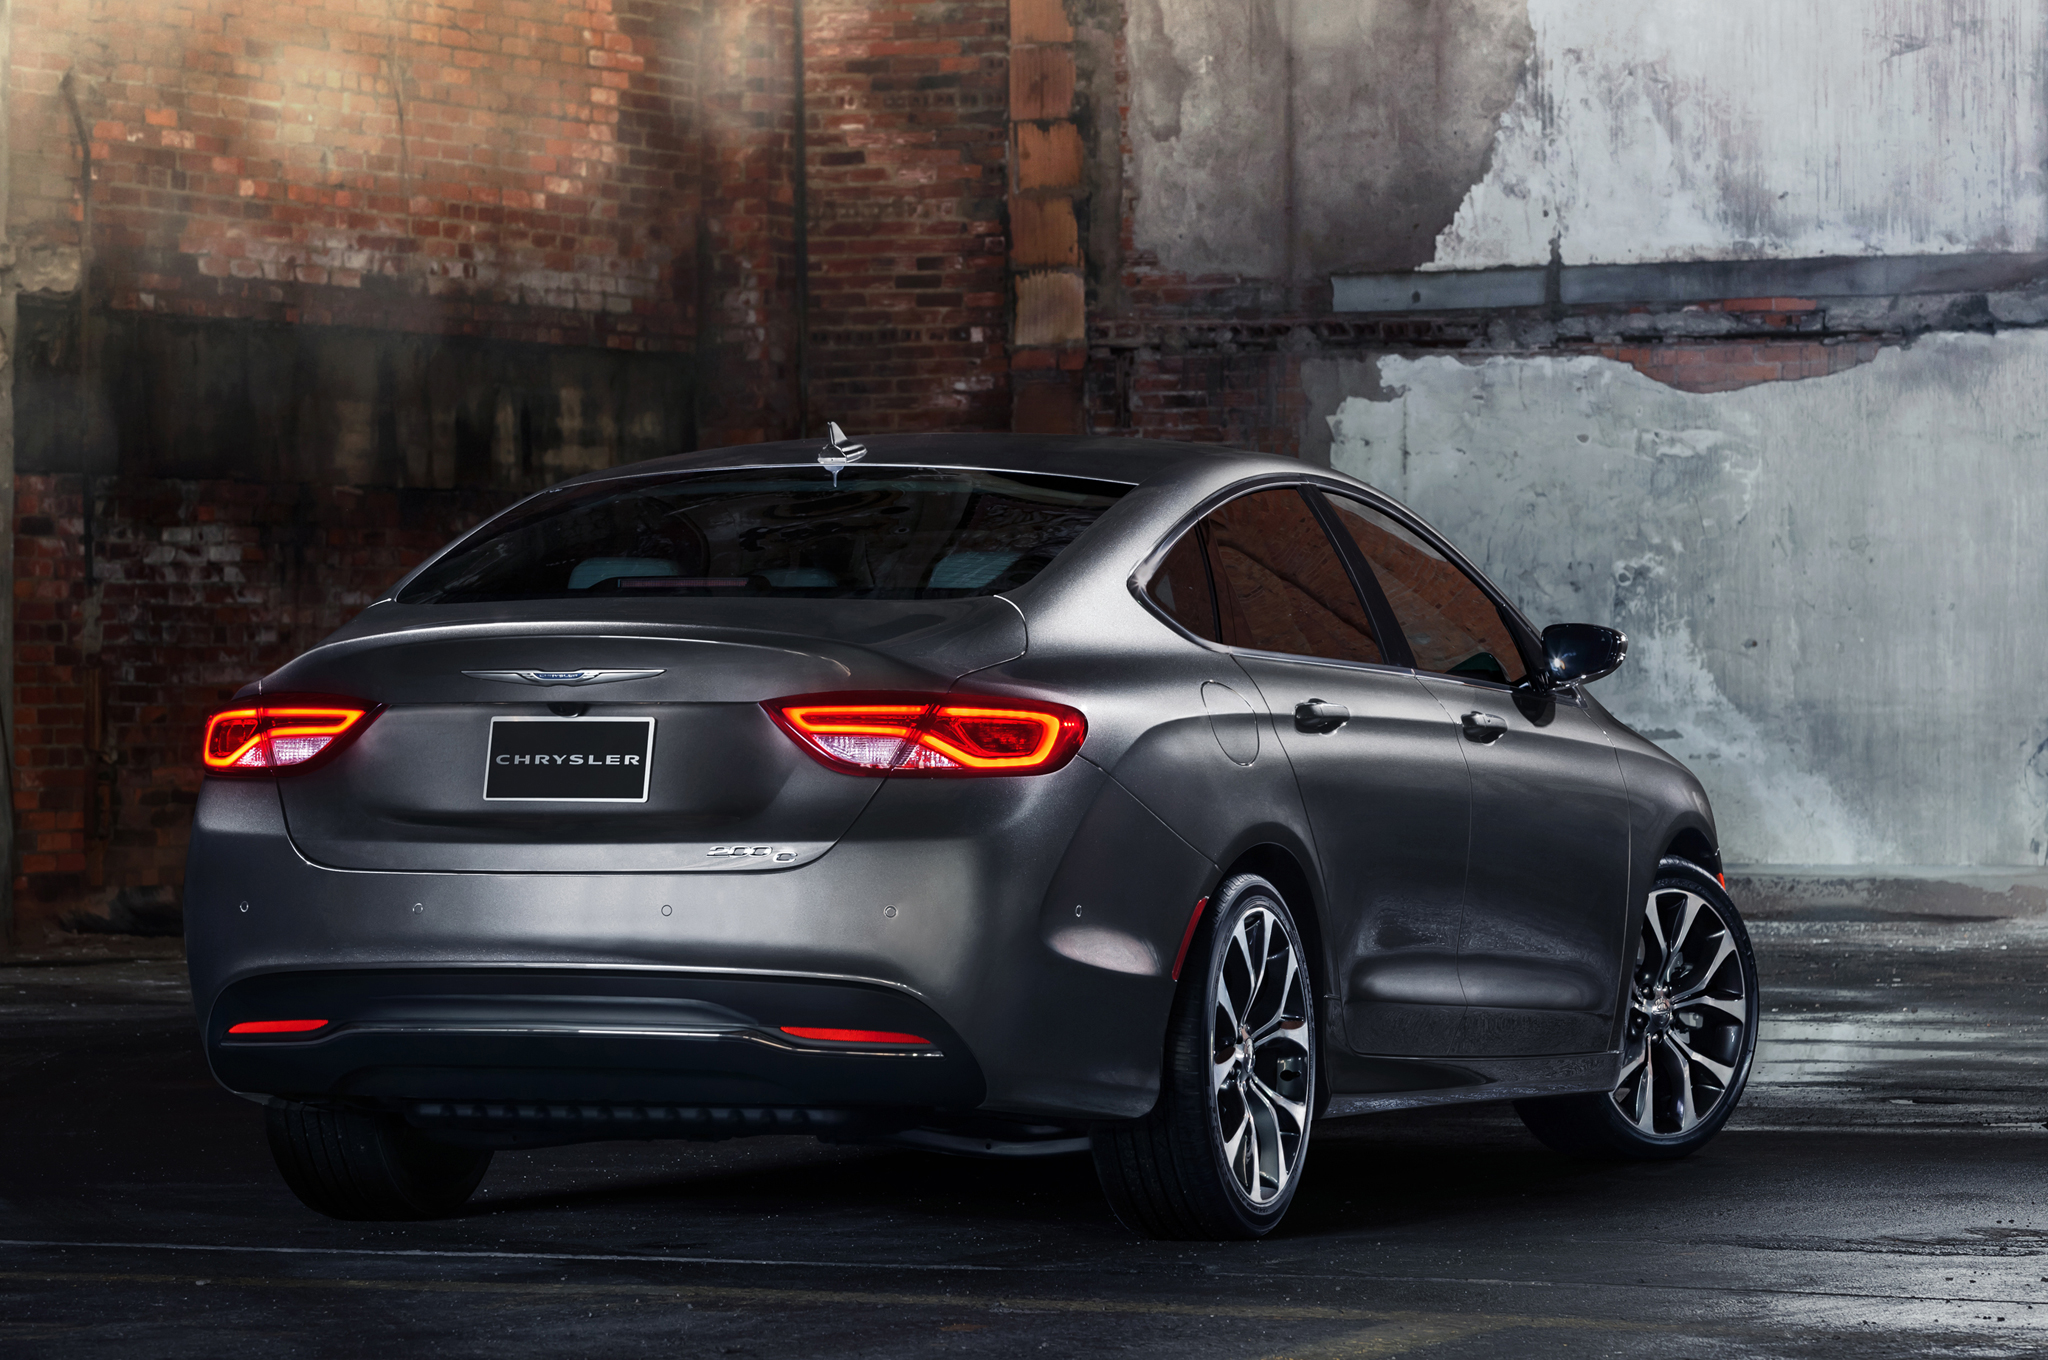 2015 Chrysler 200 Rear Exterior (View 10 of 11)